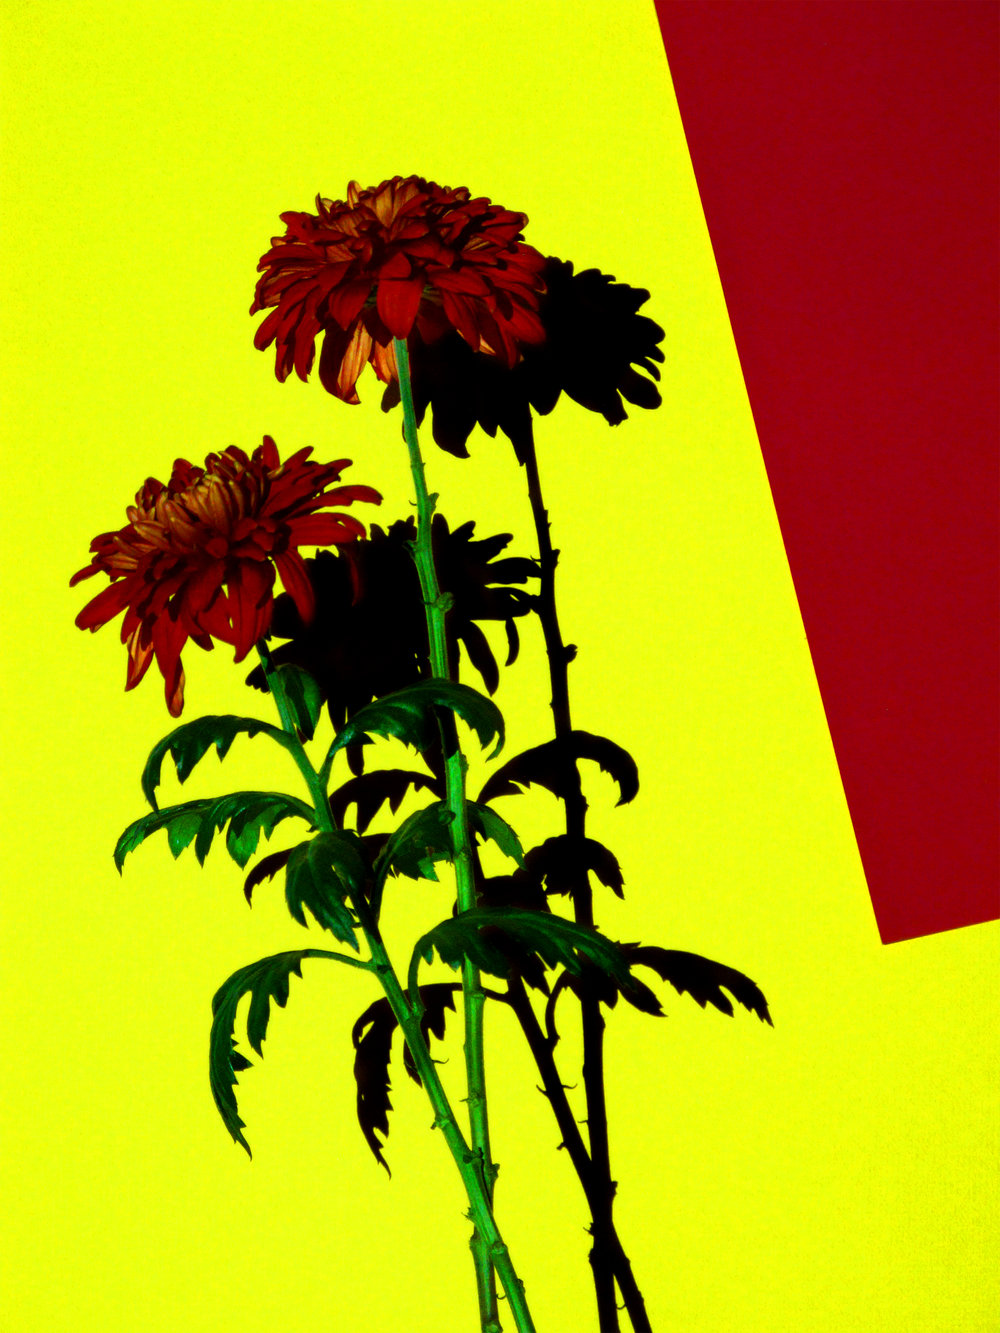 16x20_red_yellow_crysanthamum.jpg